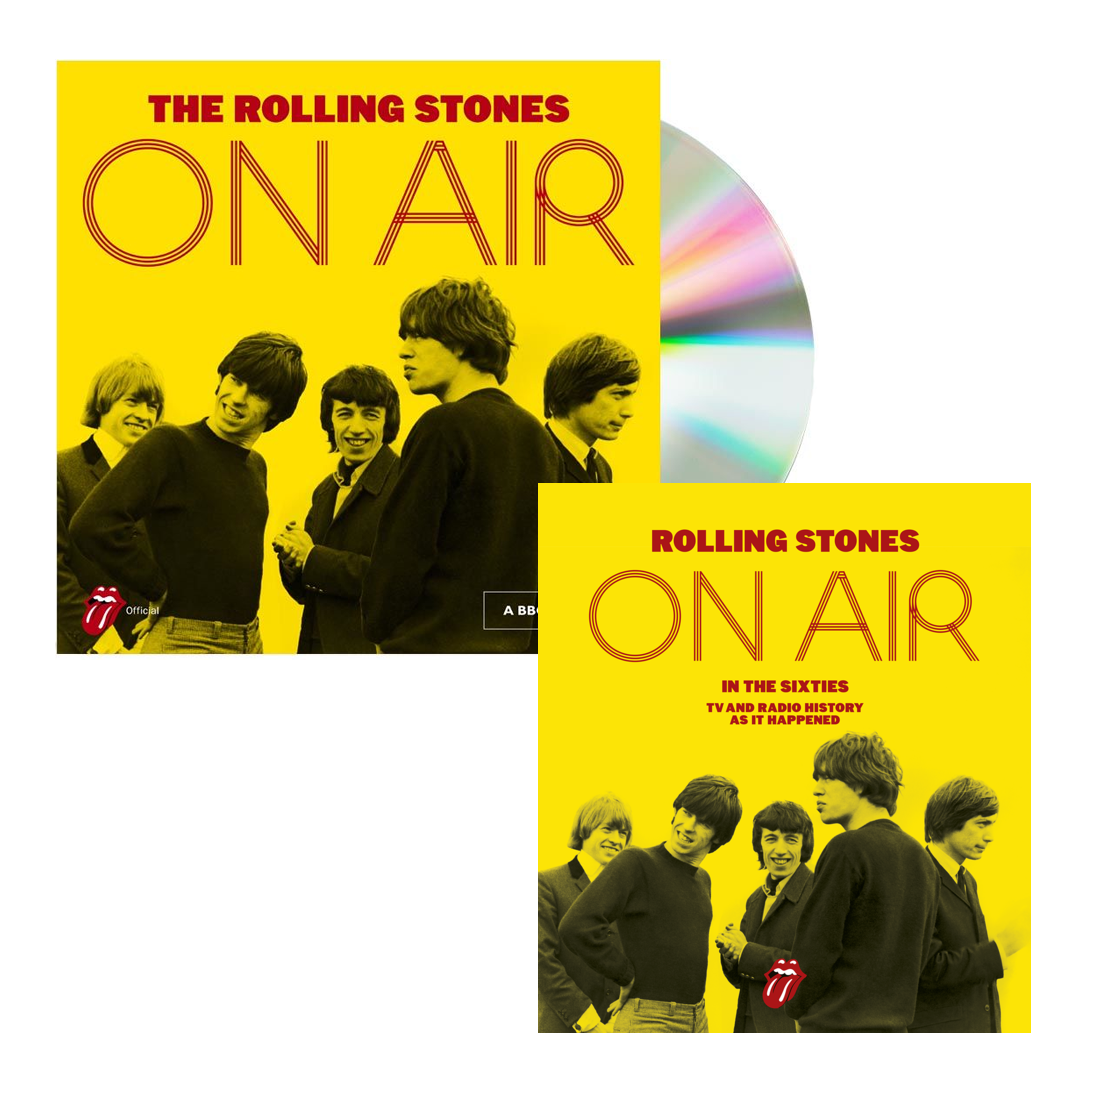 Art The Rolling Stones On Air Deluxe CD and Hardback Book